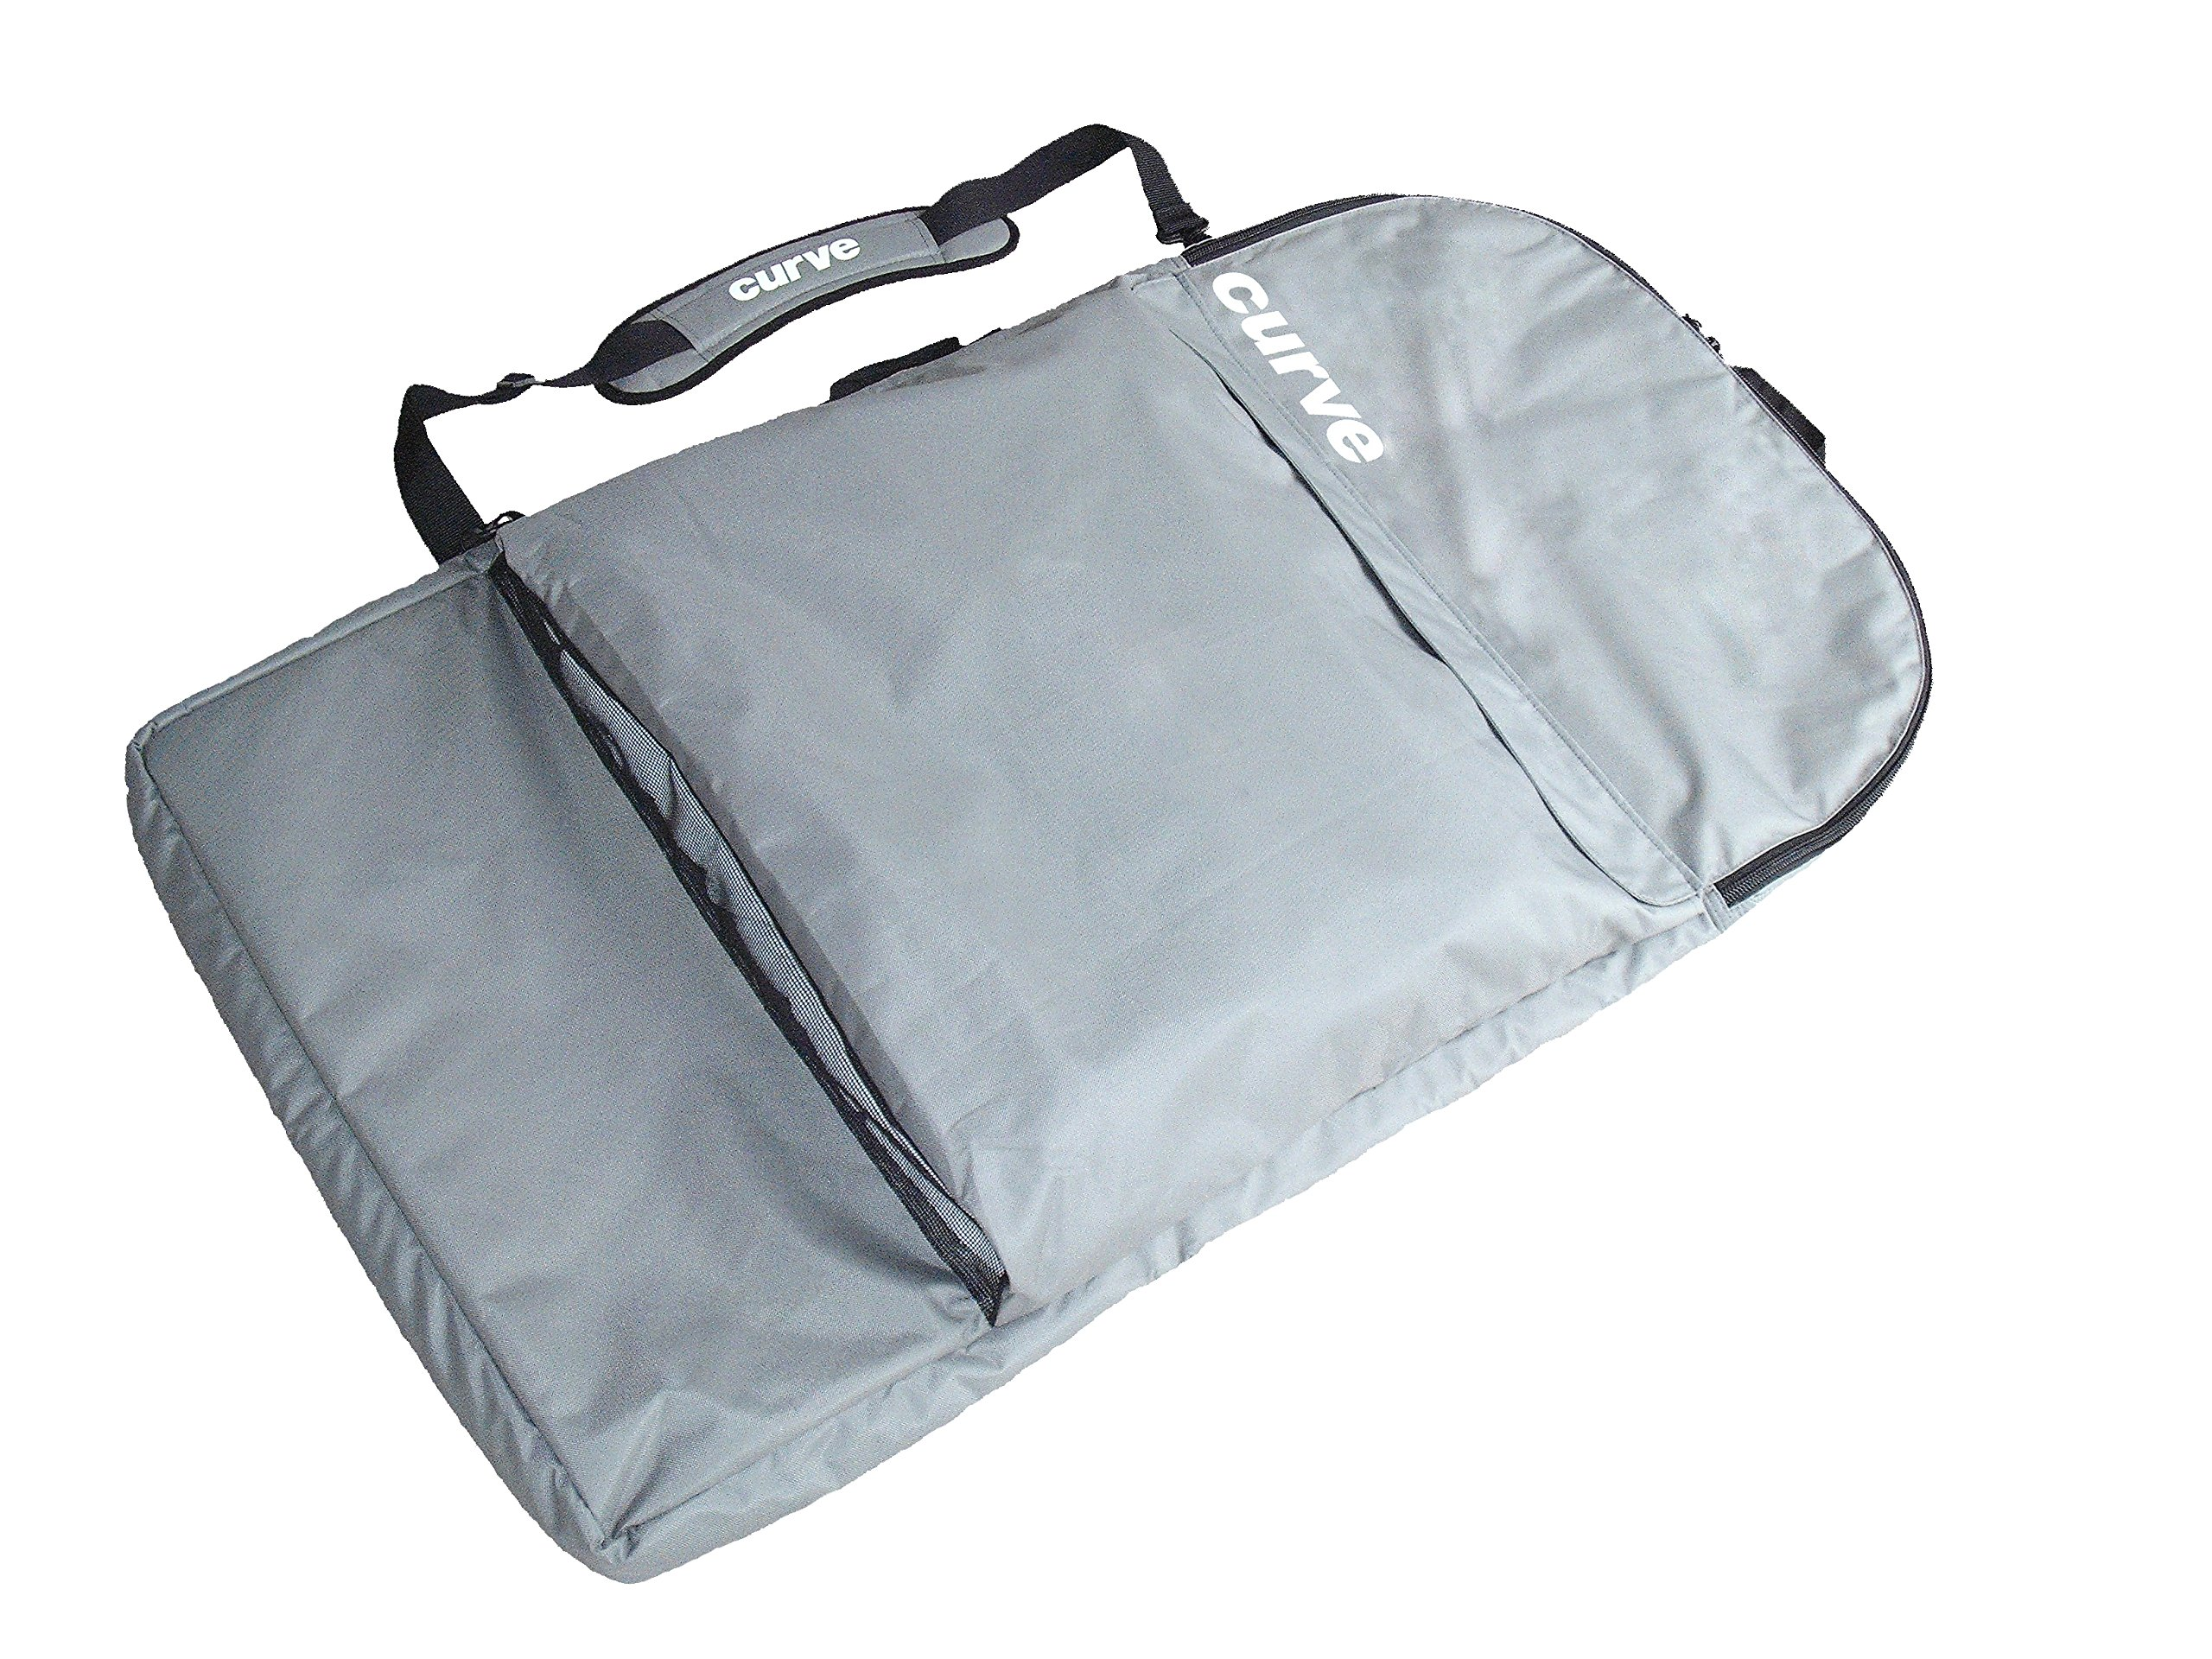 Curve Bodyboard Bag Bodyboard Cover for 1 or 2 boards - GLOBAL Padded Travel Bag by Curve (Image #1)